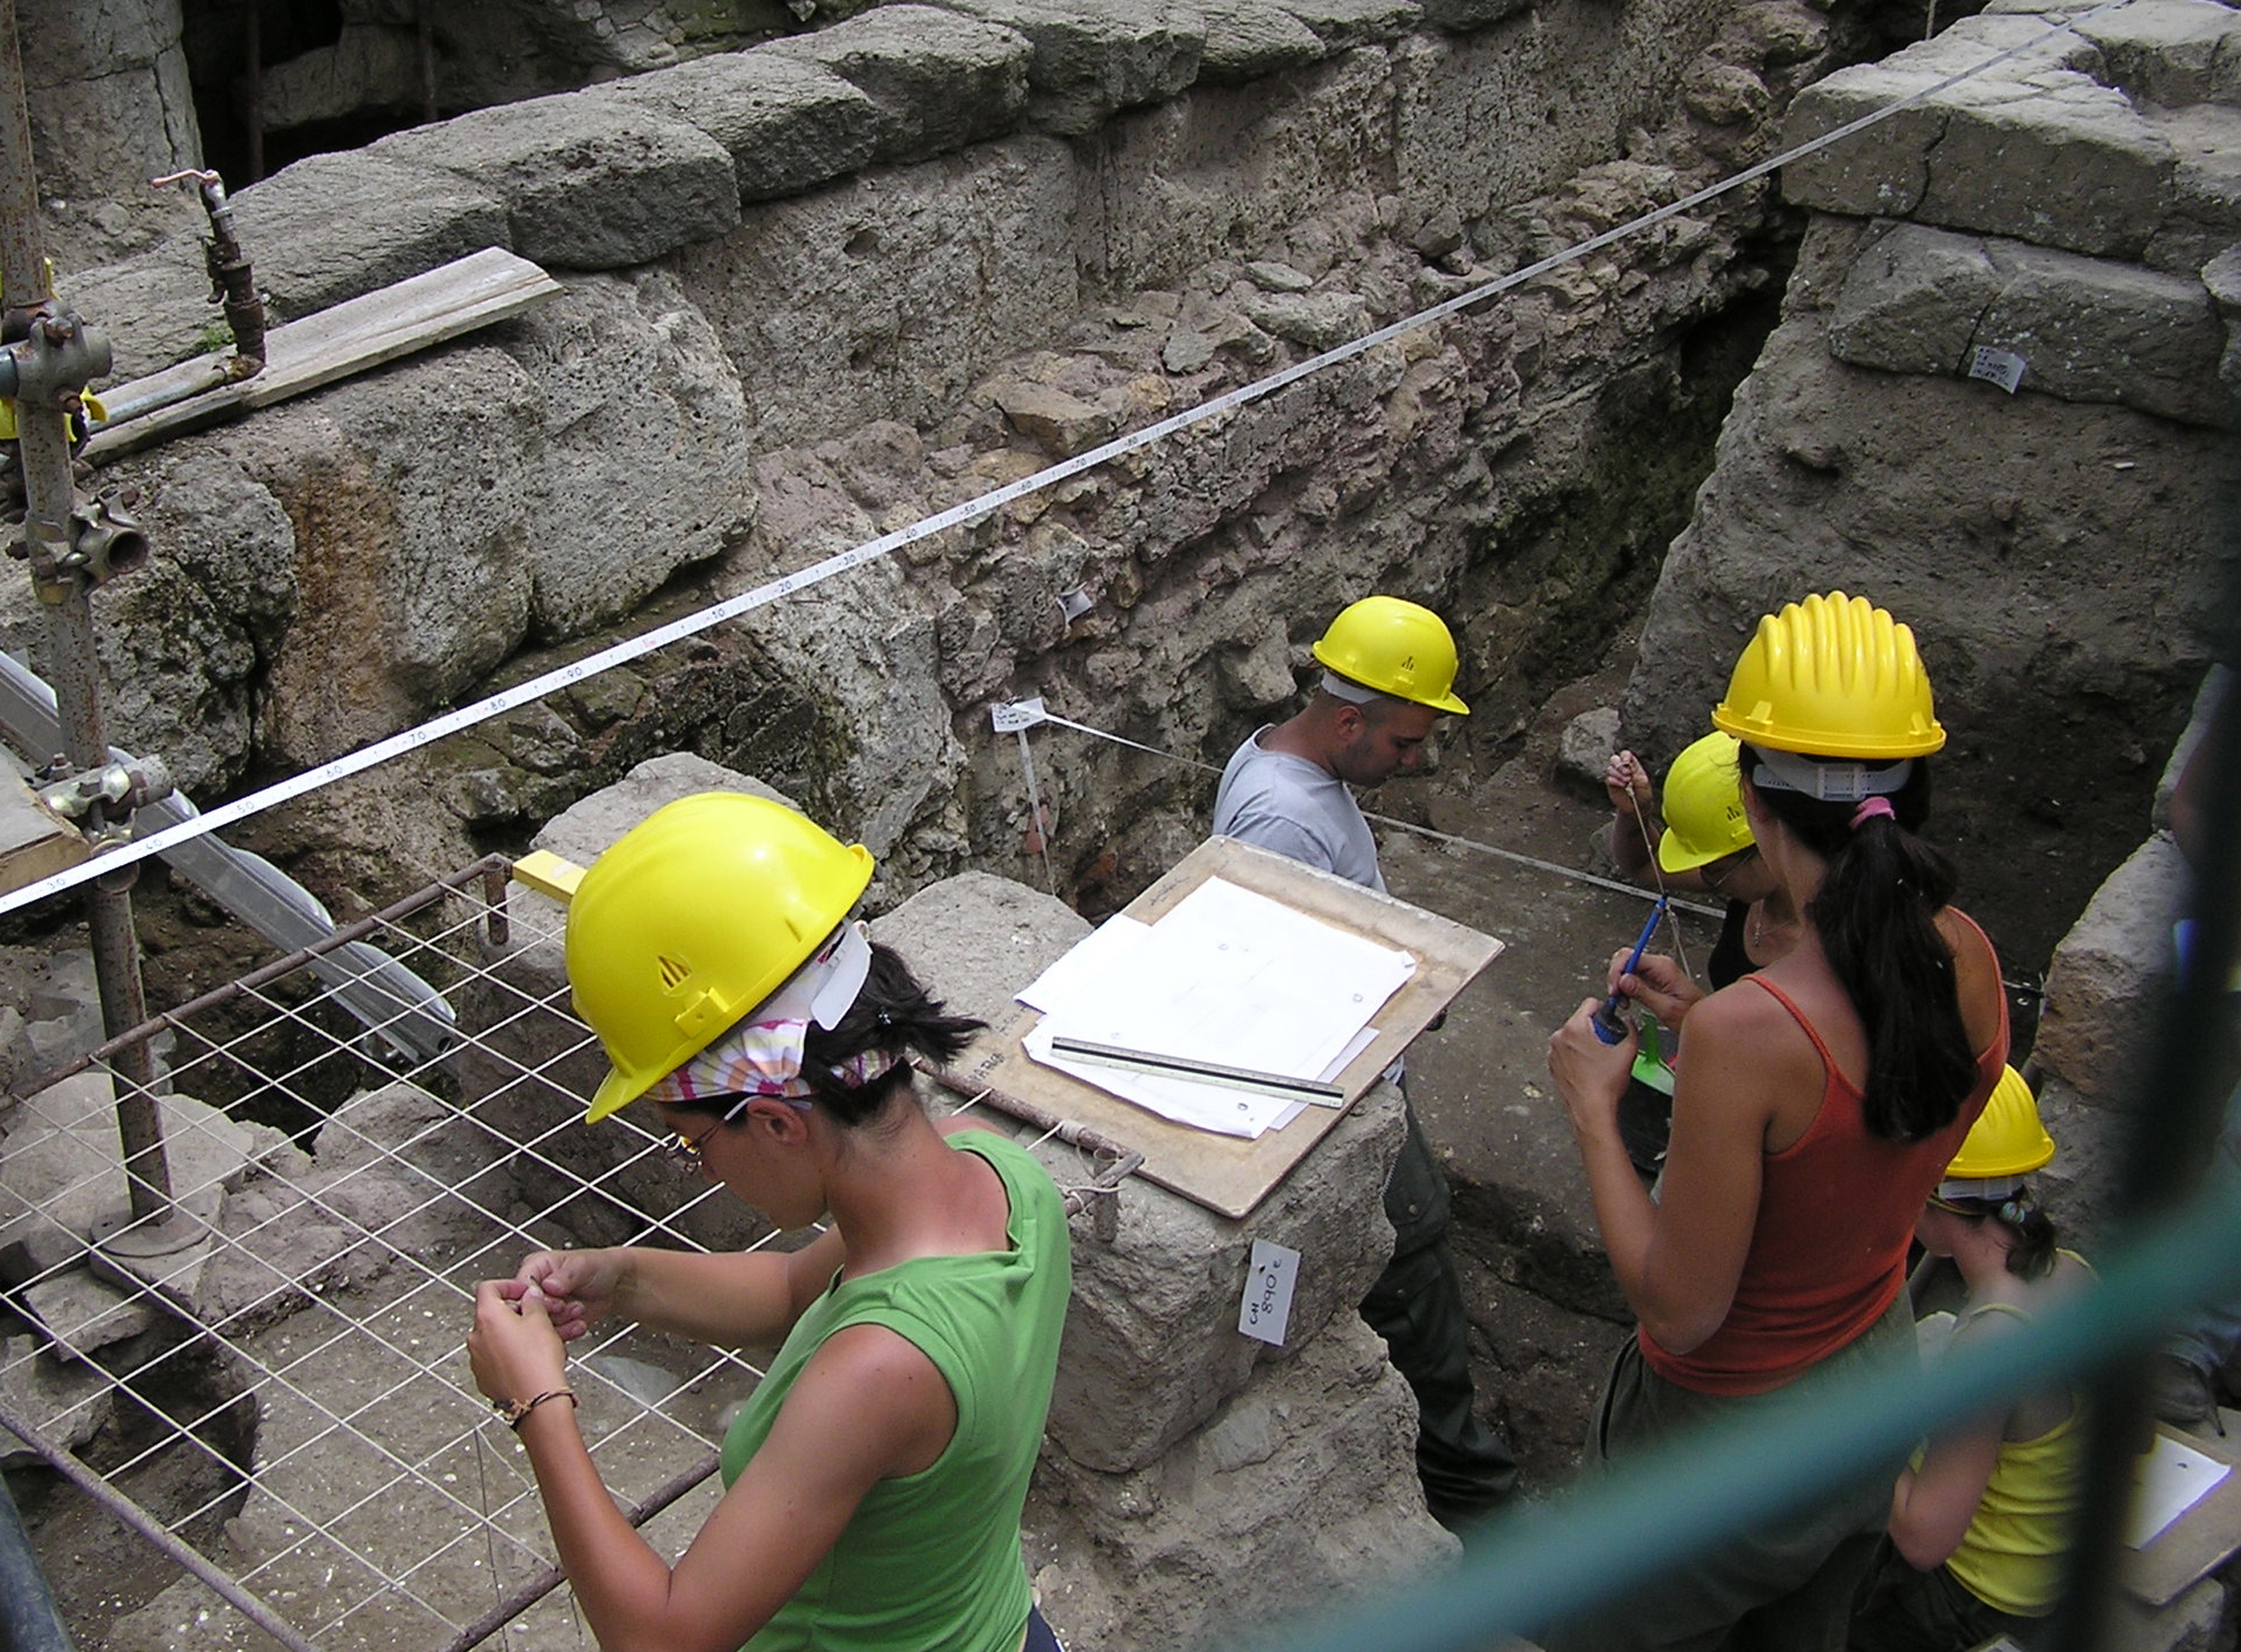 Archaeologists working on a dig site